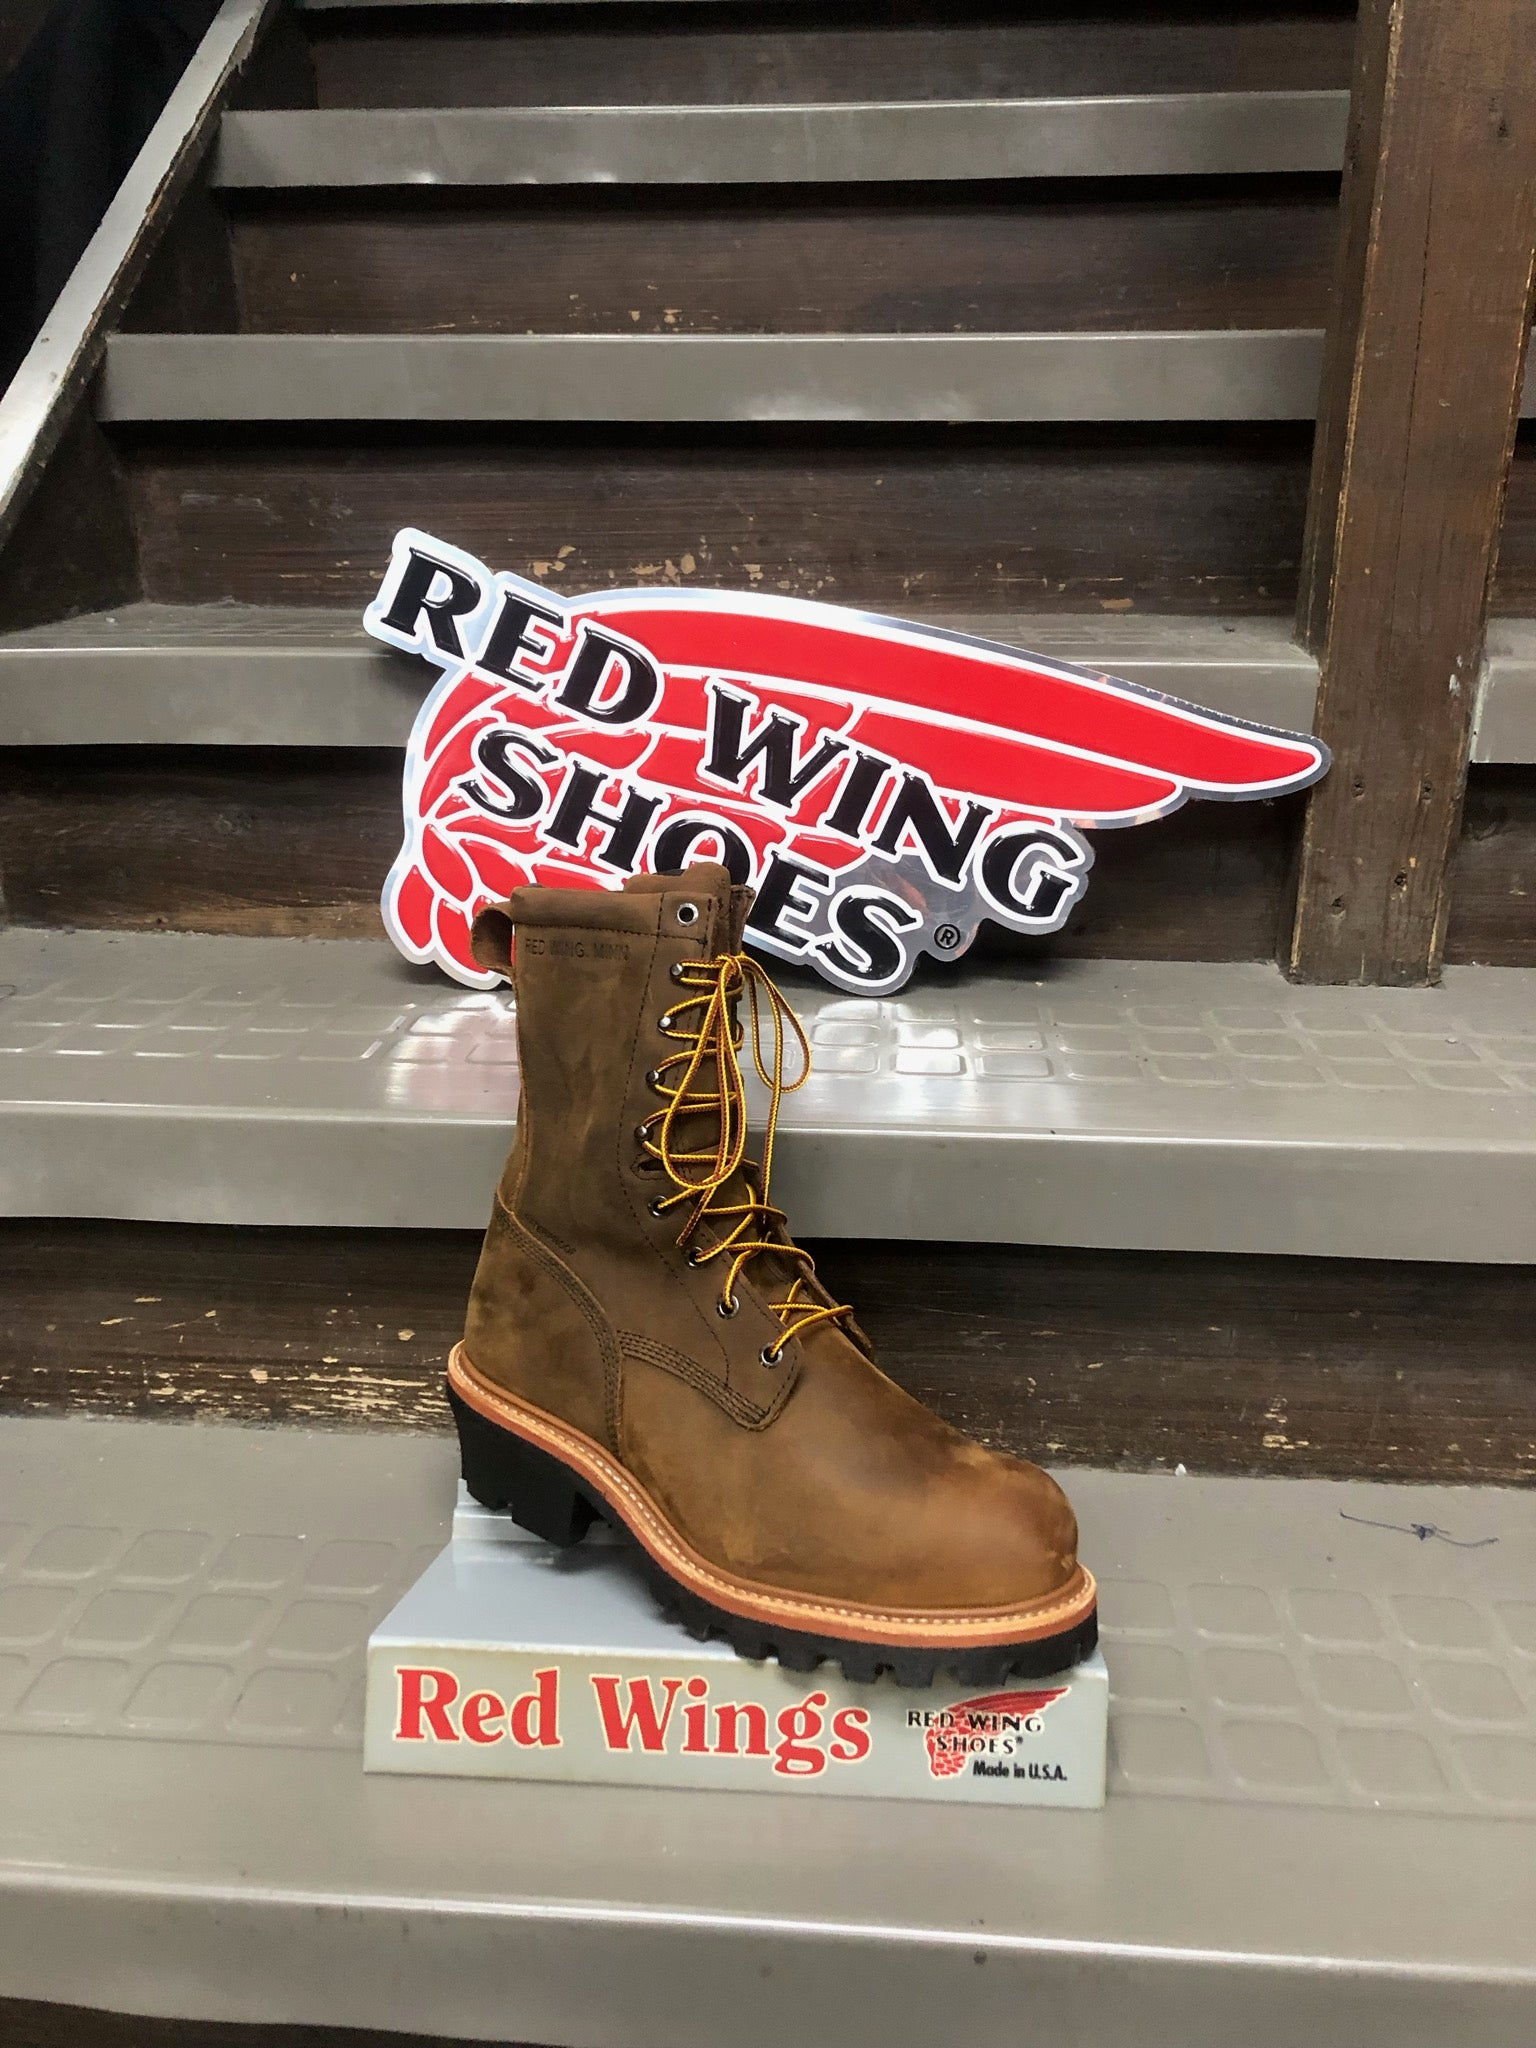 Red Wing Boots - Homer Men and Boys Store